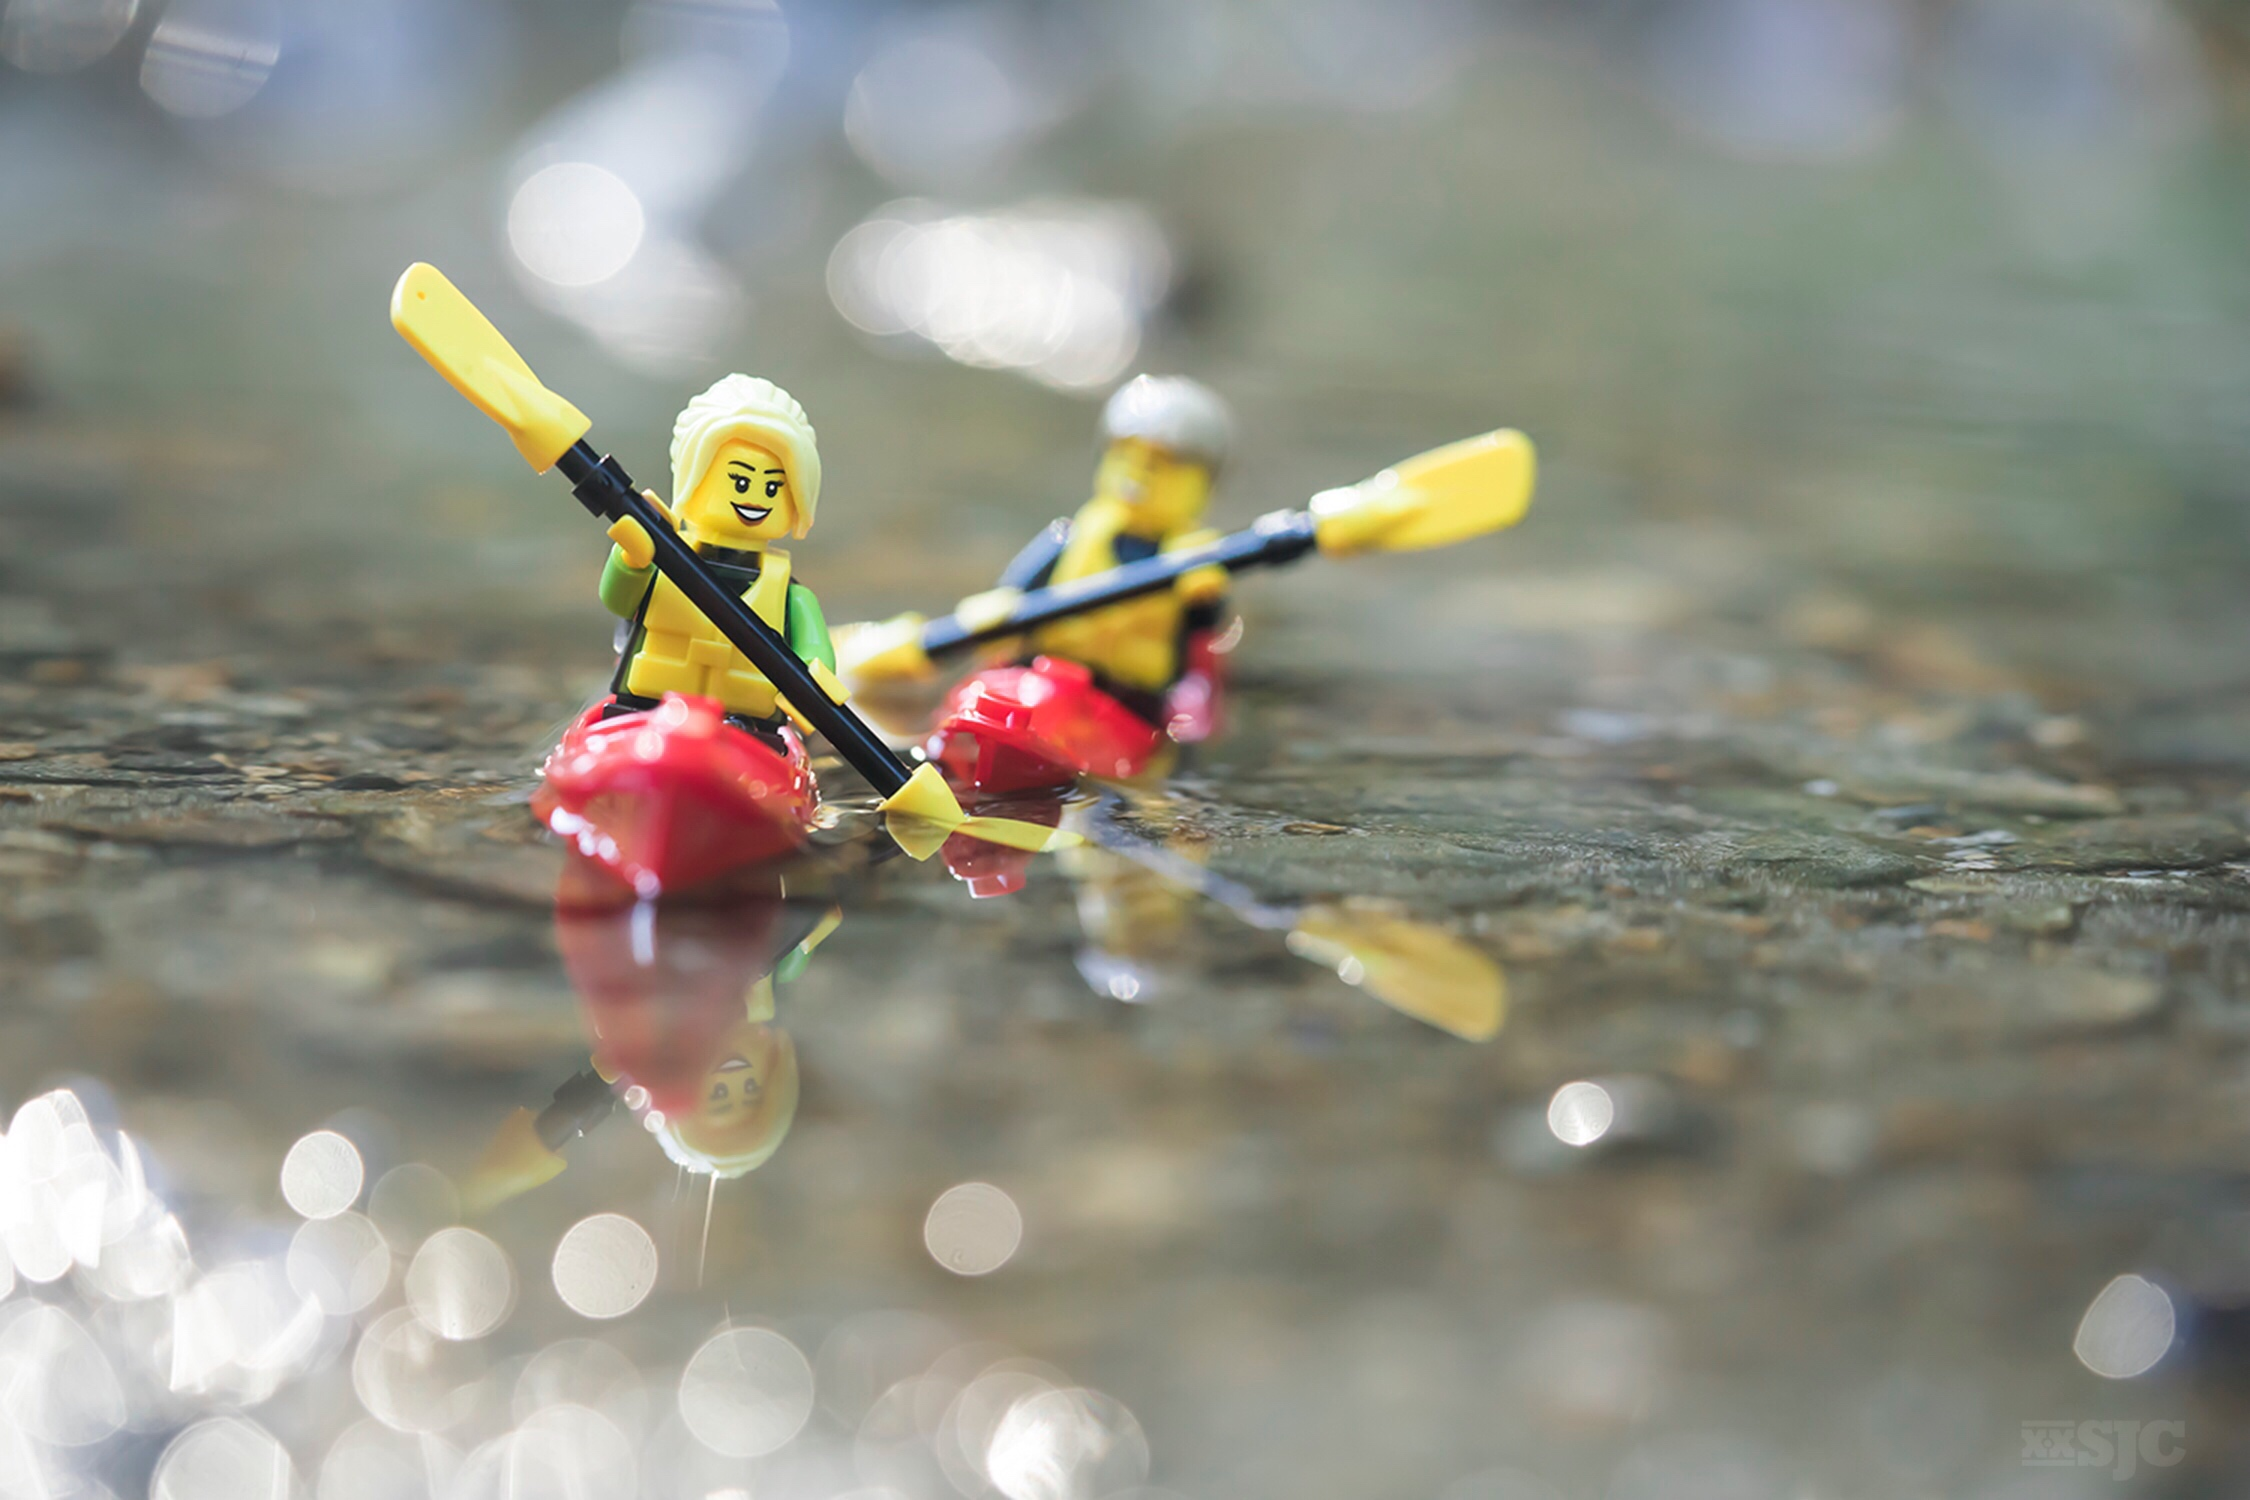 Two LEGO minifigures kayaking photo by Shelly Corbett